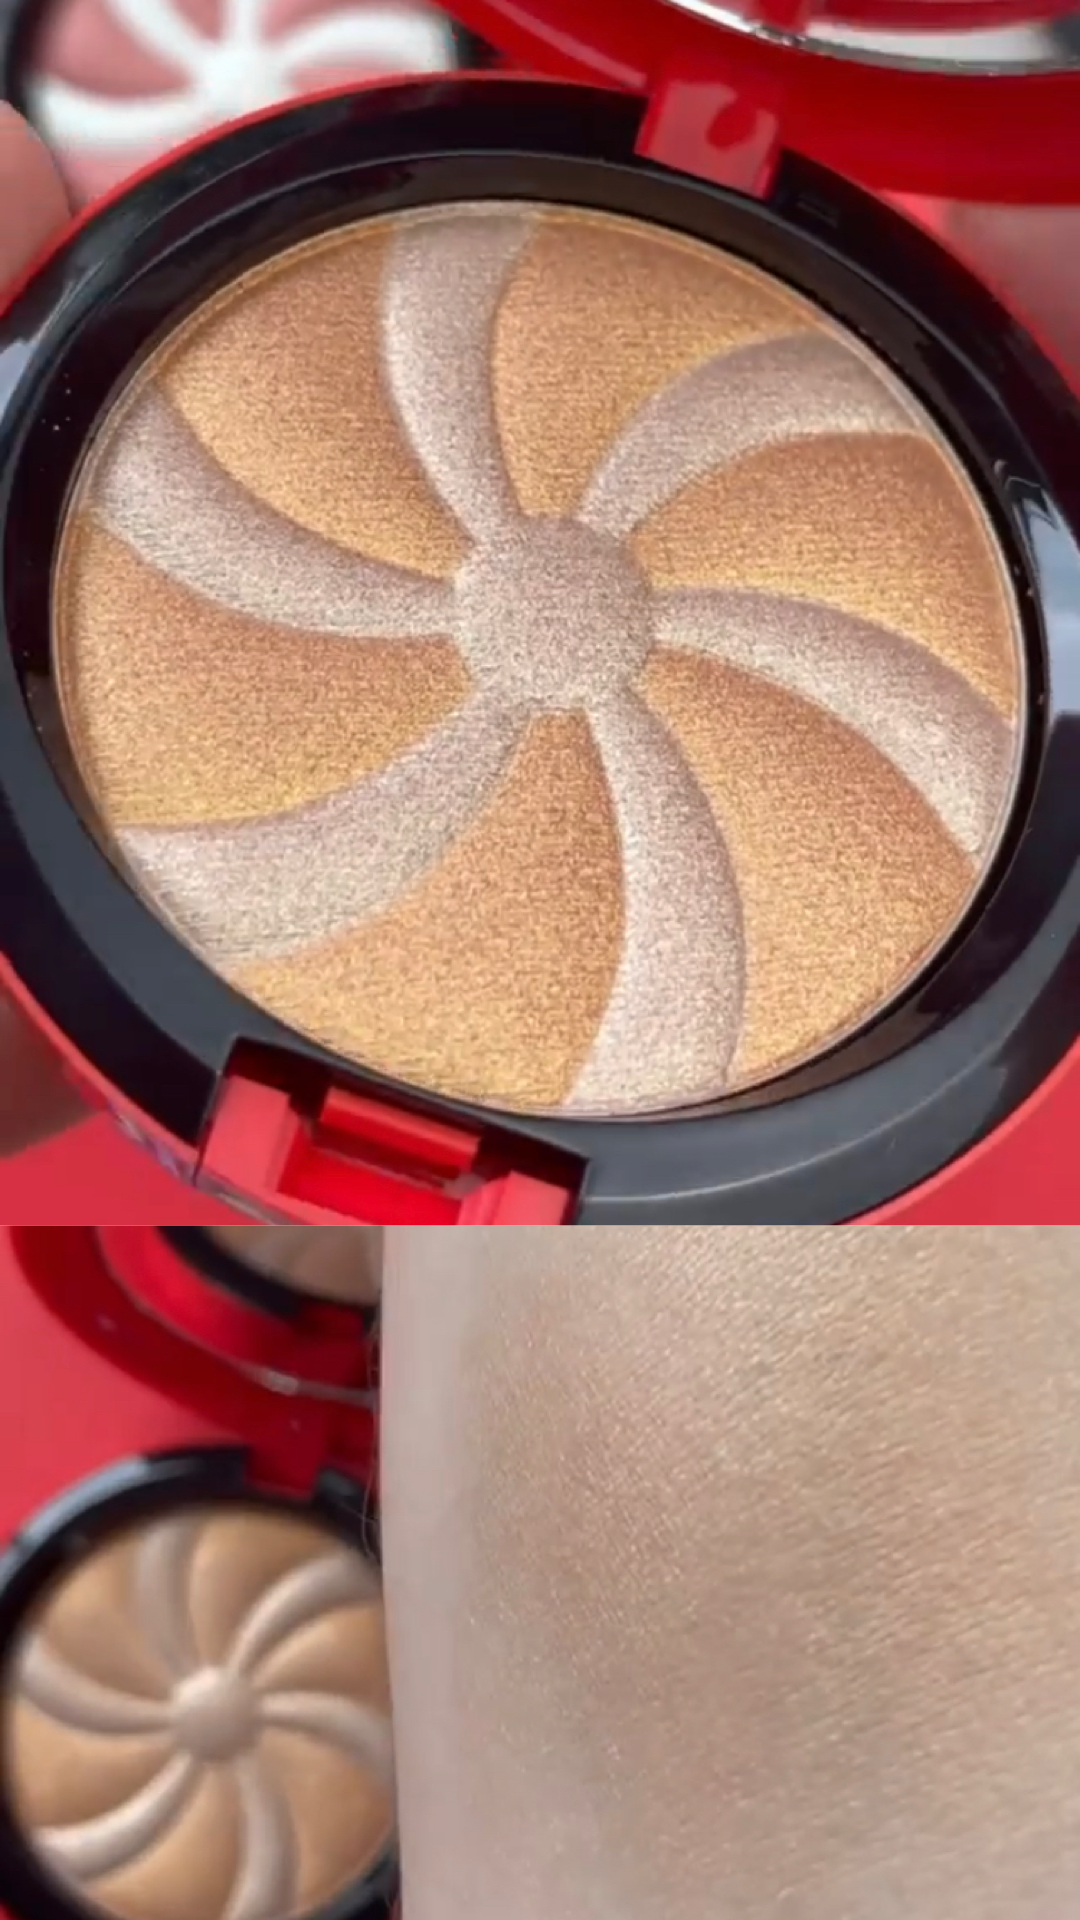 MAC Holiday 2021 Collection Reveal!